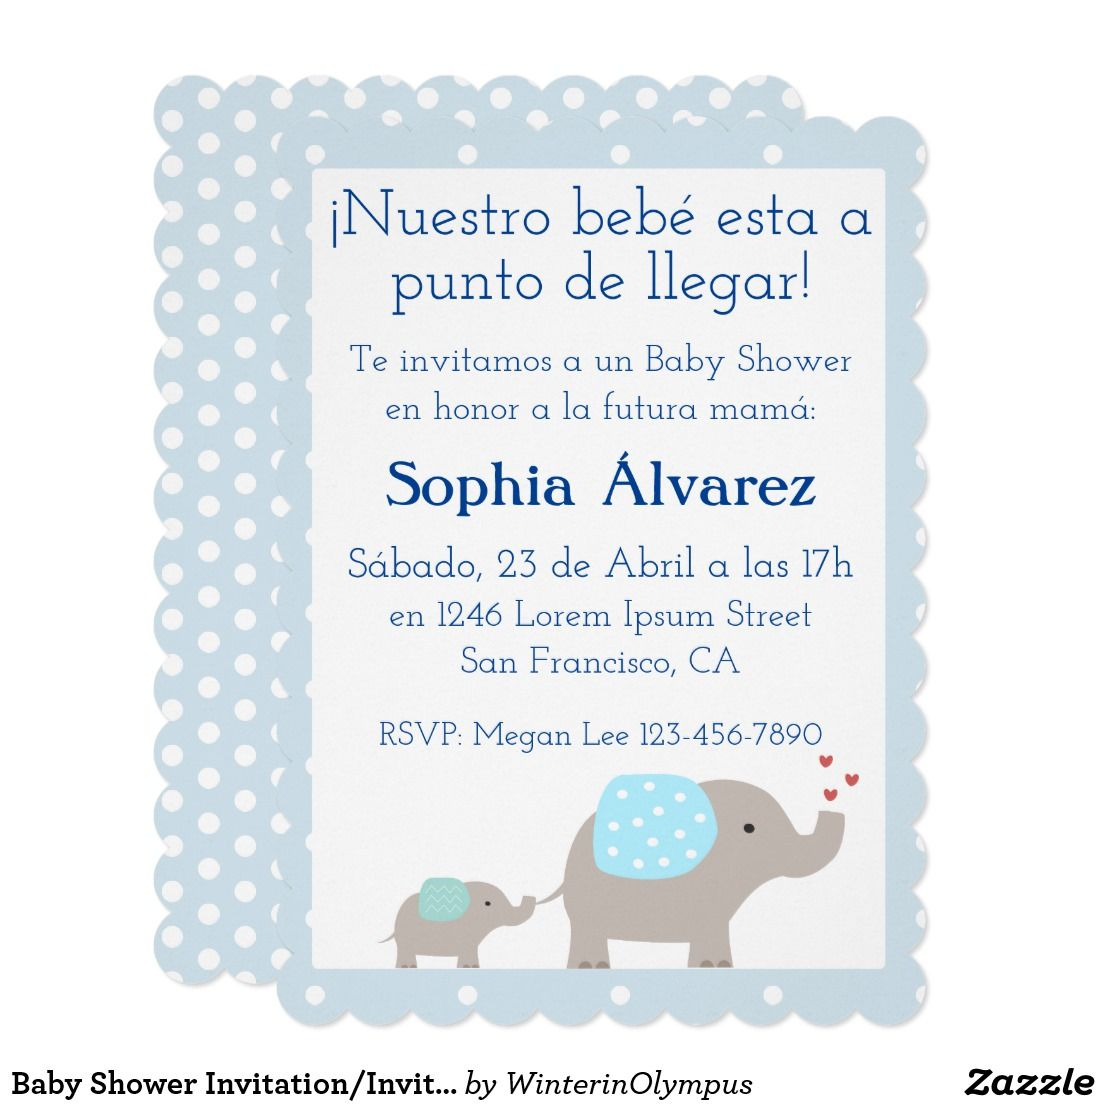 Baby shower invitationinvitacin para baby shower invitation baby shower invitationinvitacin para baby shower card invite your friends and family to share stopboris Gallery